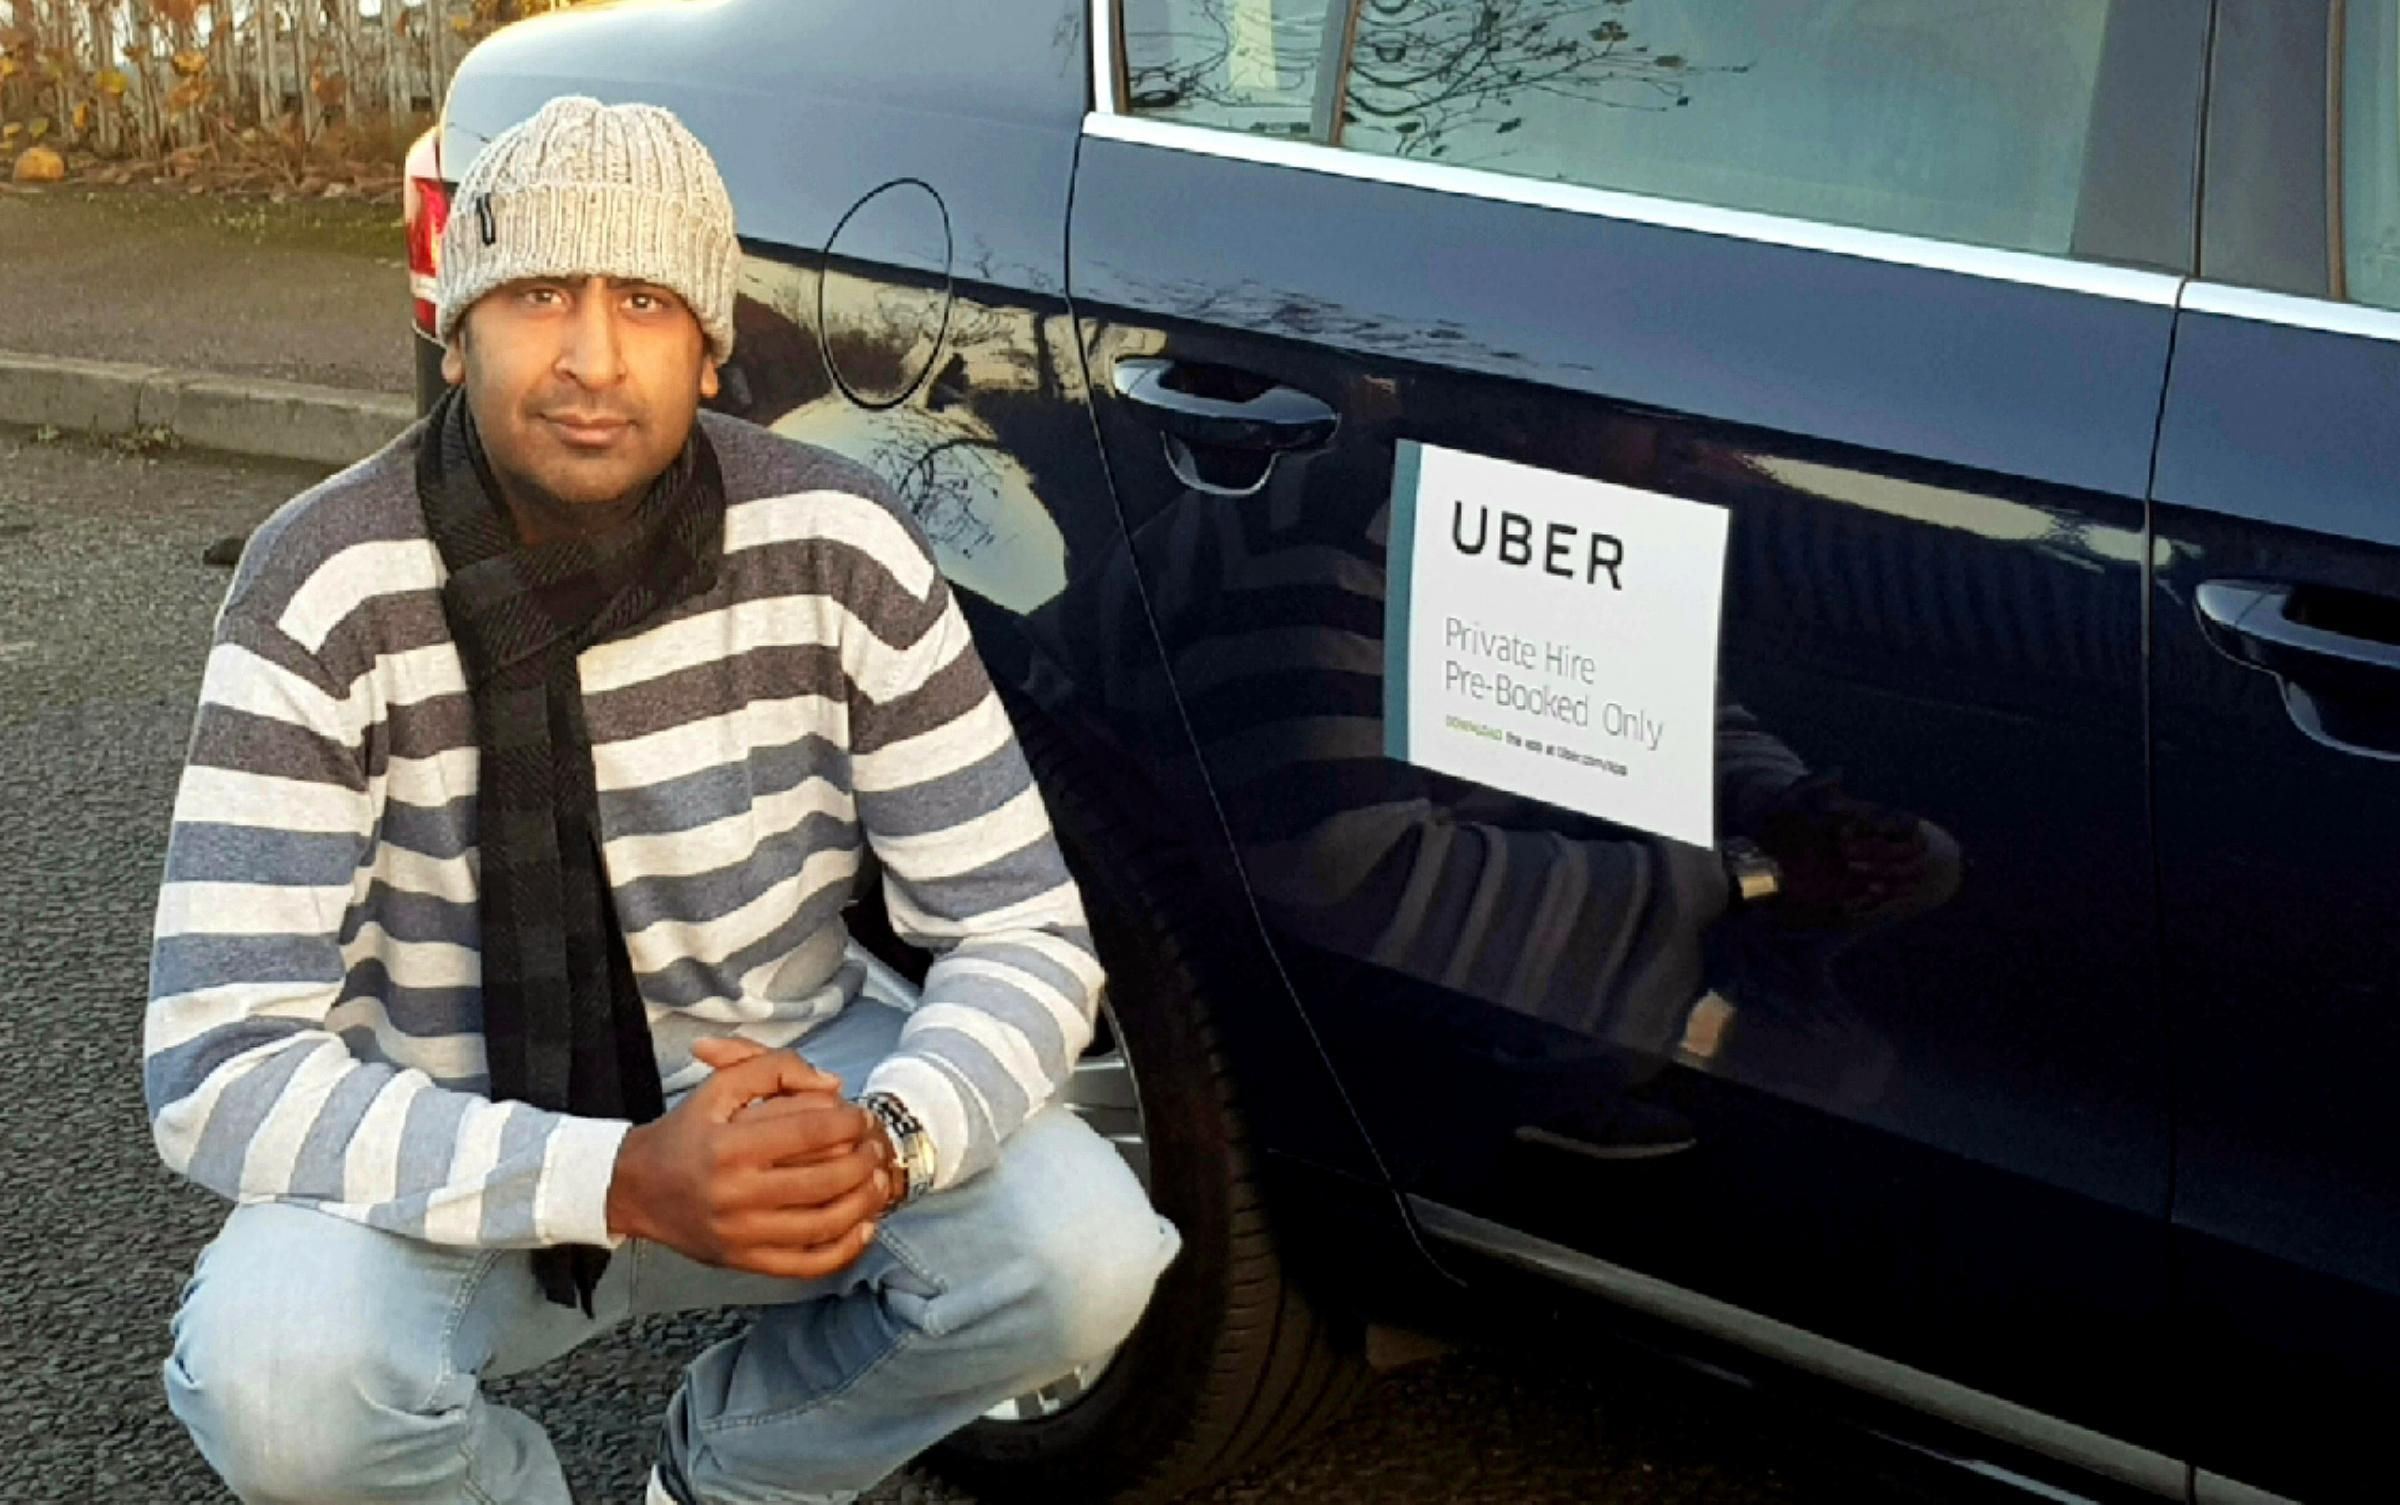 Racially abused in York, Cabbie Mohammed Shafaq has won an apology from North Yorkshire Police